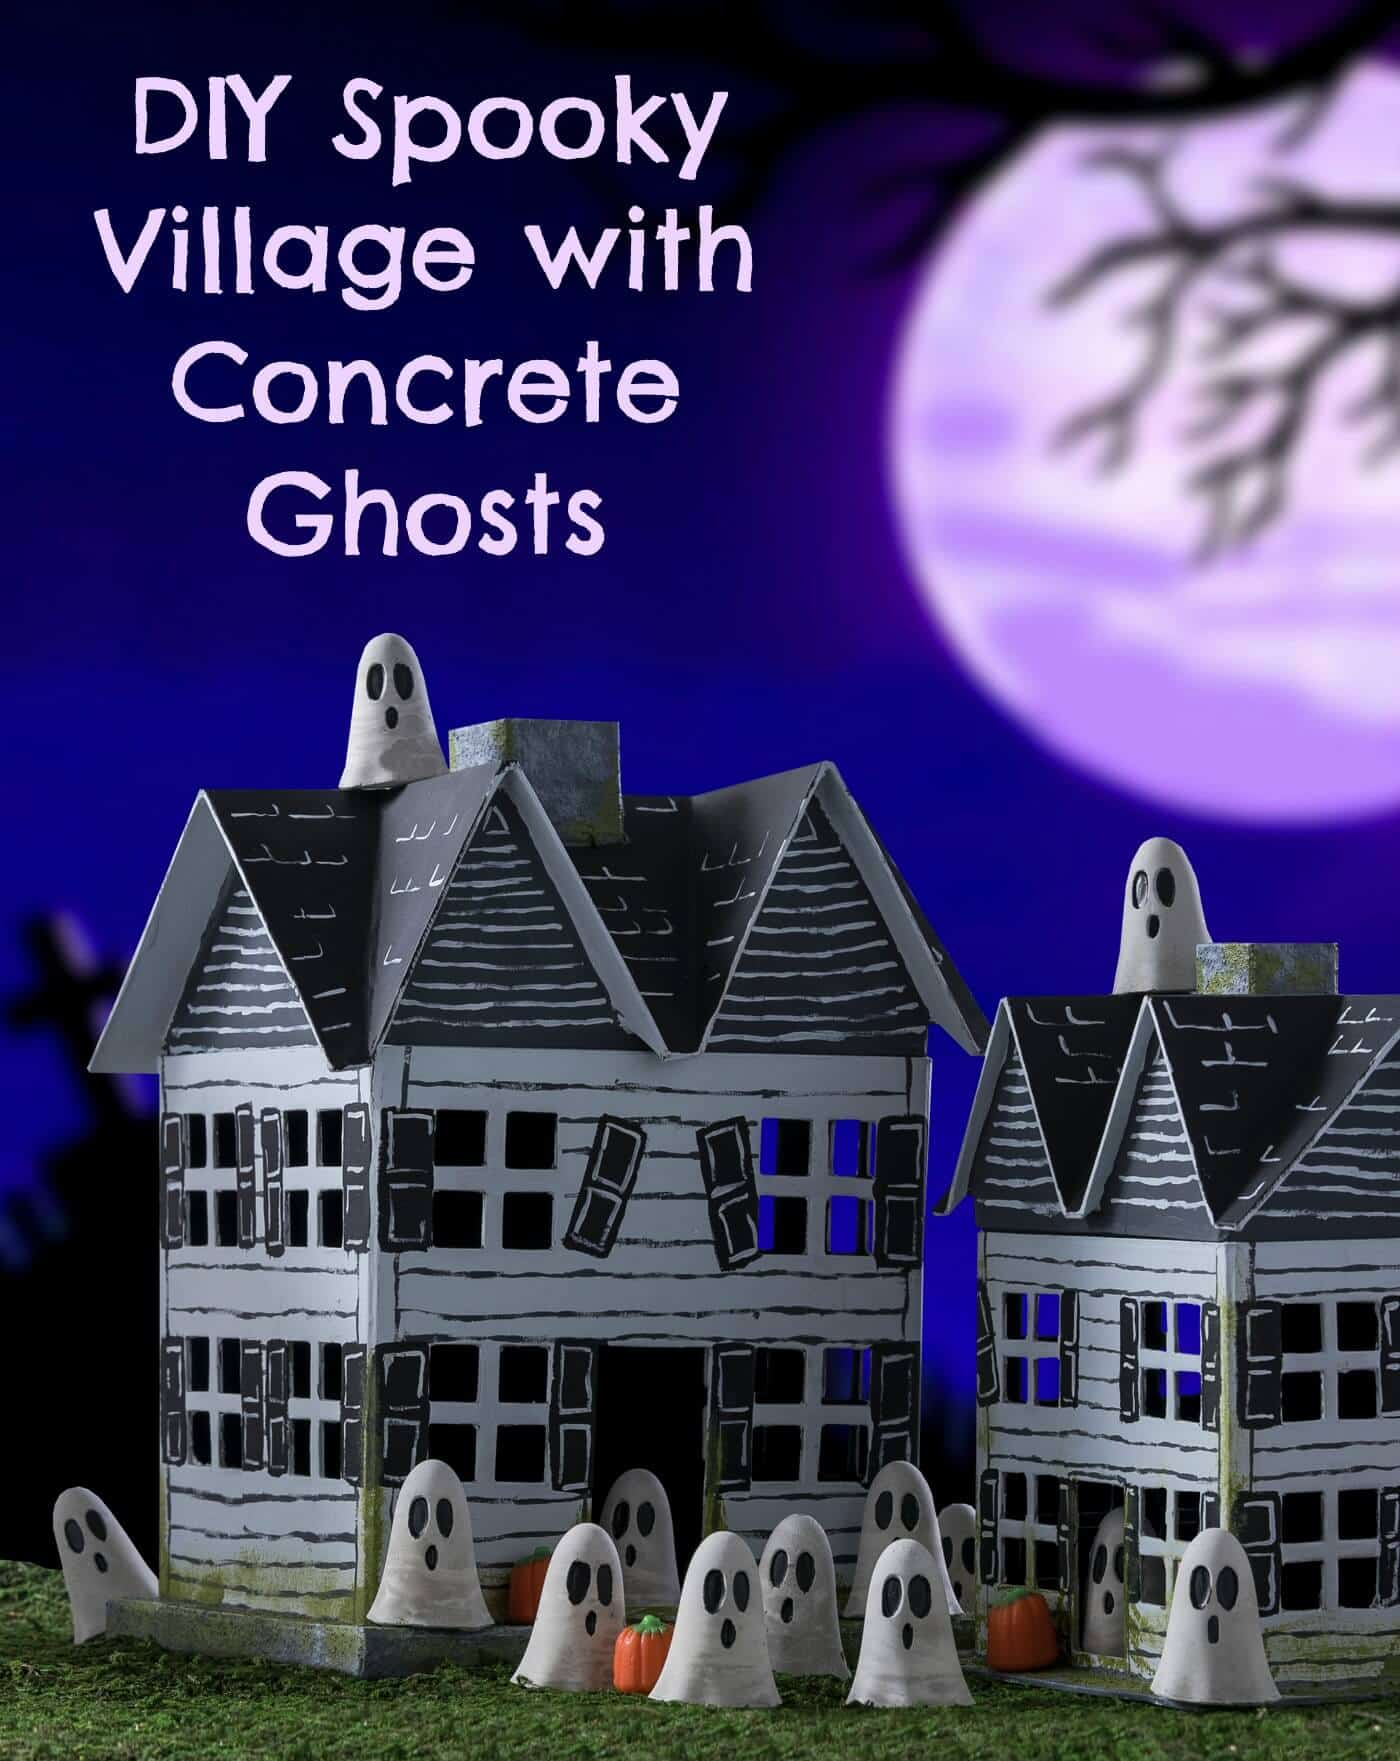 DIY Spooky Village with Concrete Ghosts